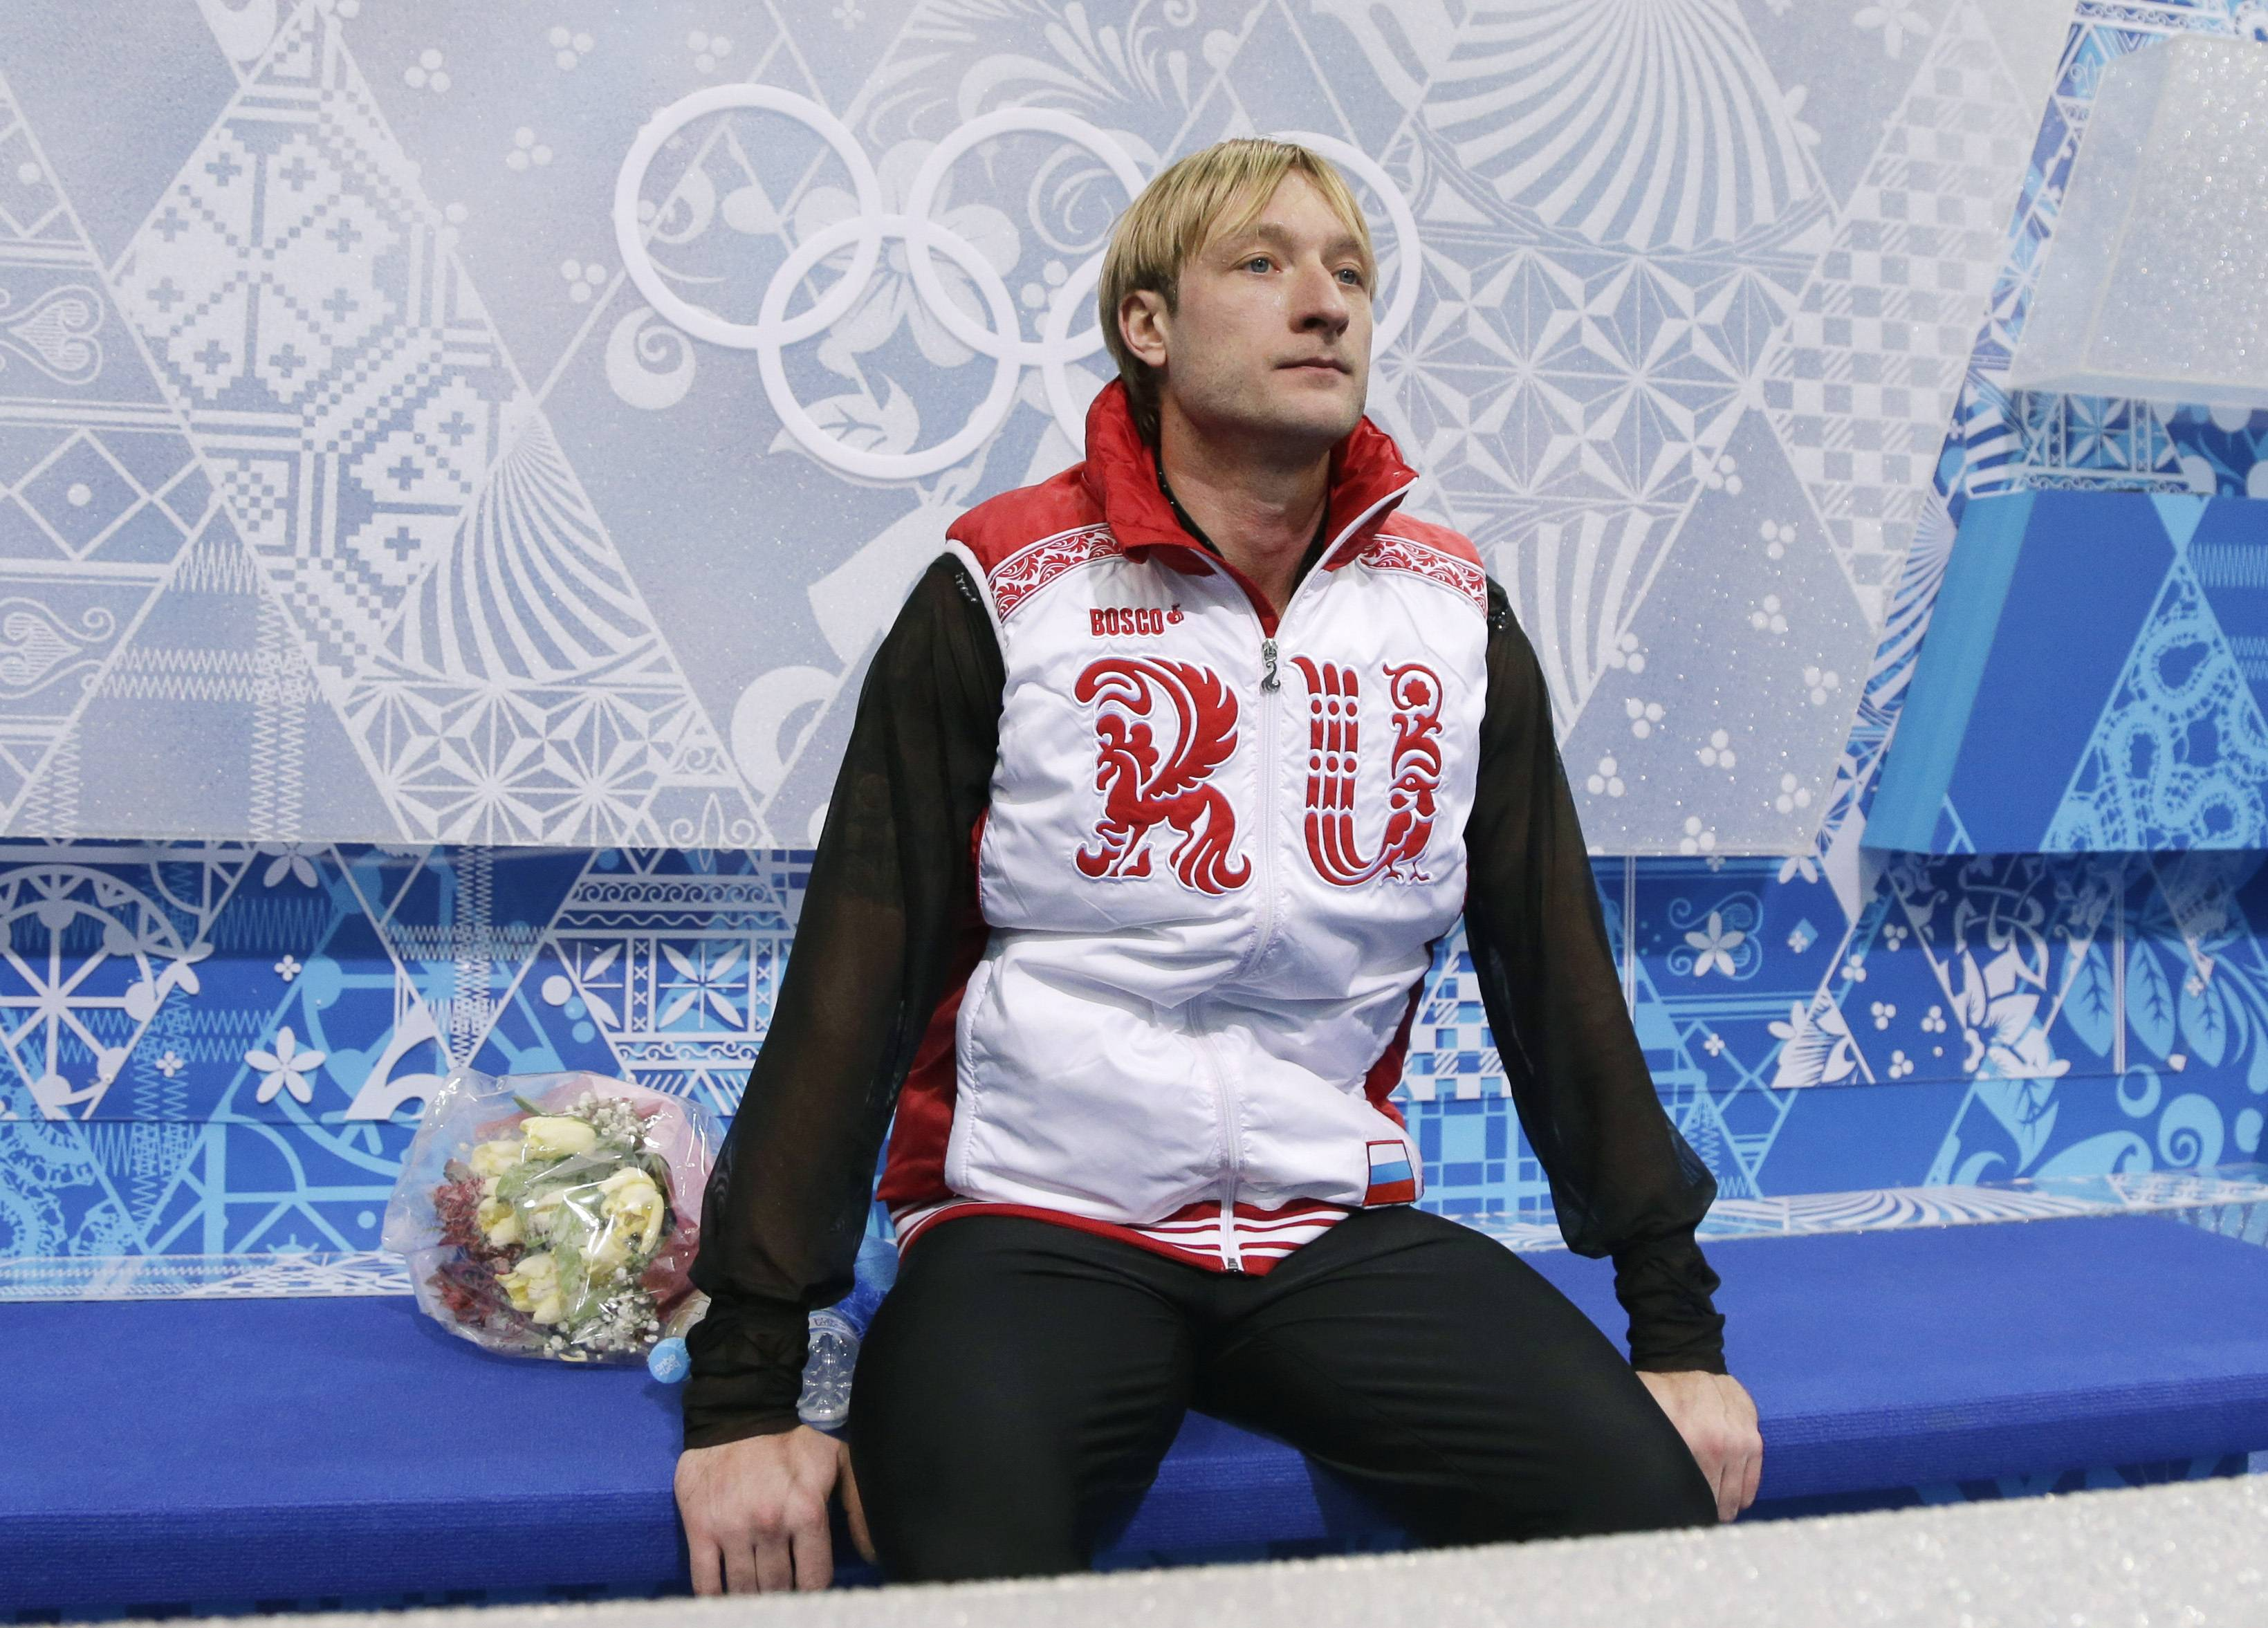 Evgeni Plushenko of Russia sits Sunday after competing in the men's team free skate figure skating competition at the Iceberg Skating Palace during the 2014 Winter Olympics in Sochi, Russia.